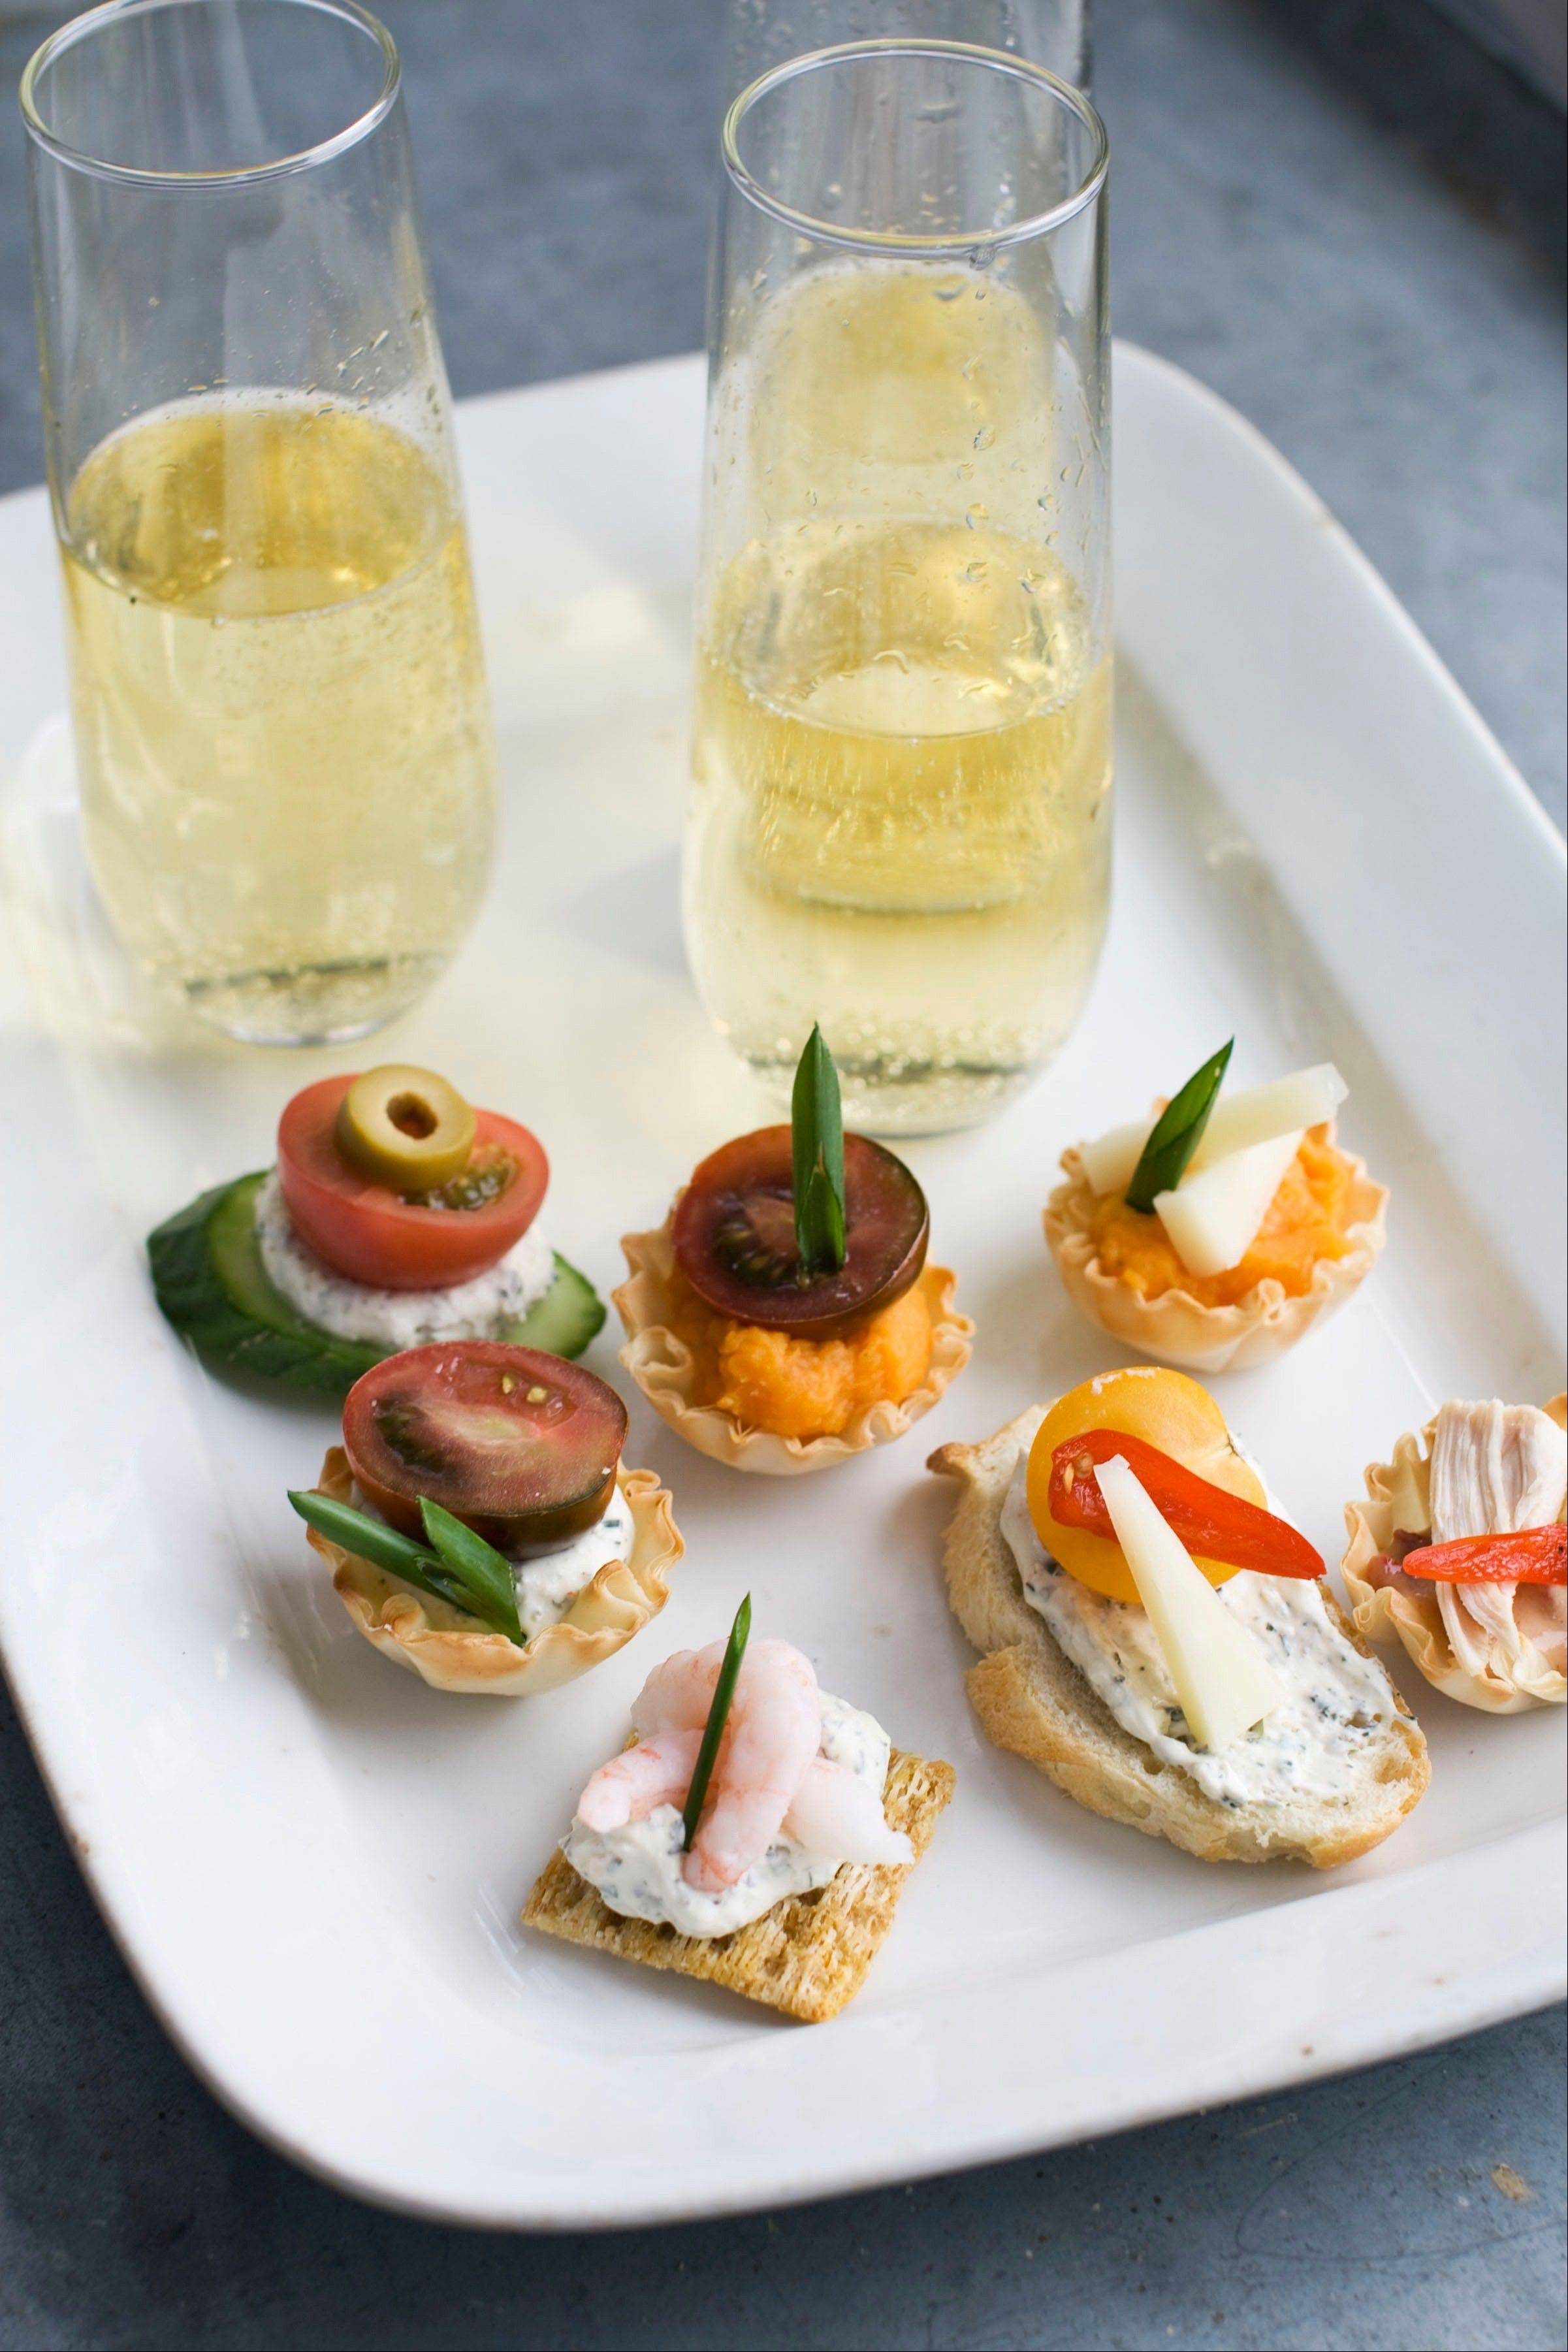 Using a building block approach to Oscar party canapes, guests can select from a buffet of ingredients — from bases and spreads to toppings and garnishes — to design snacks that suit their preferences.